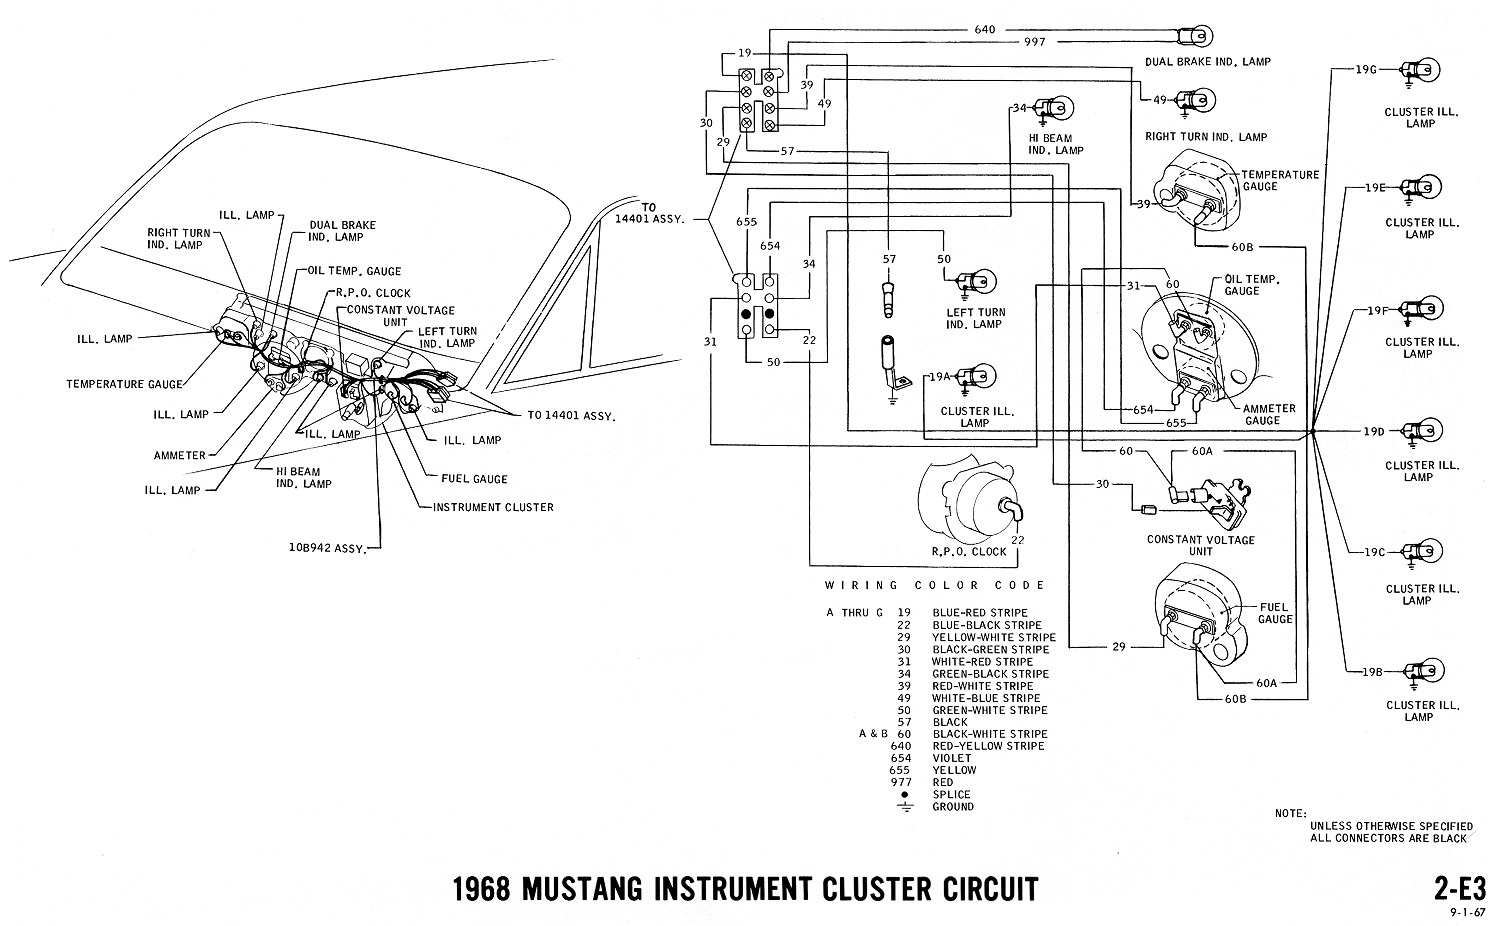 1969 mustang electrical wiring diagram data wiring diagram update1969 mustang wiring harness index listing of wiring diagrams bass tracker electrical wiring diagram 1968 mustang